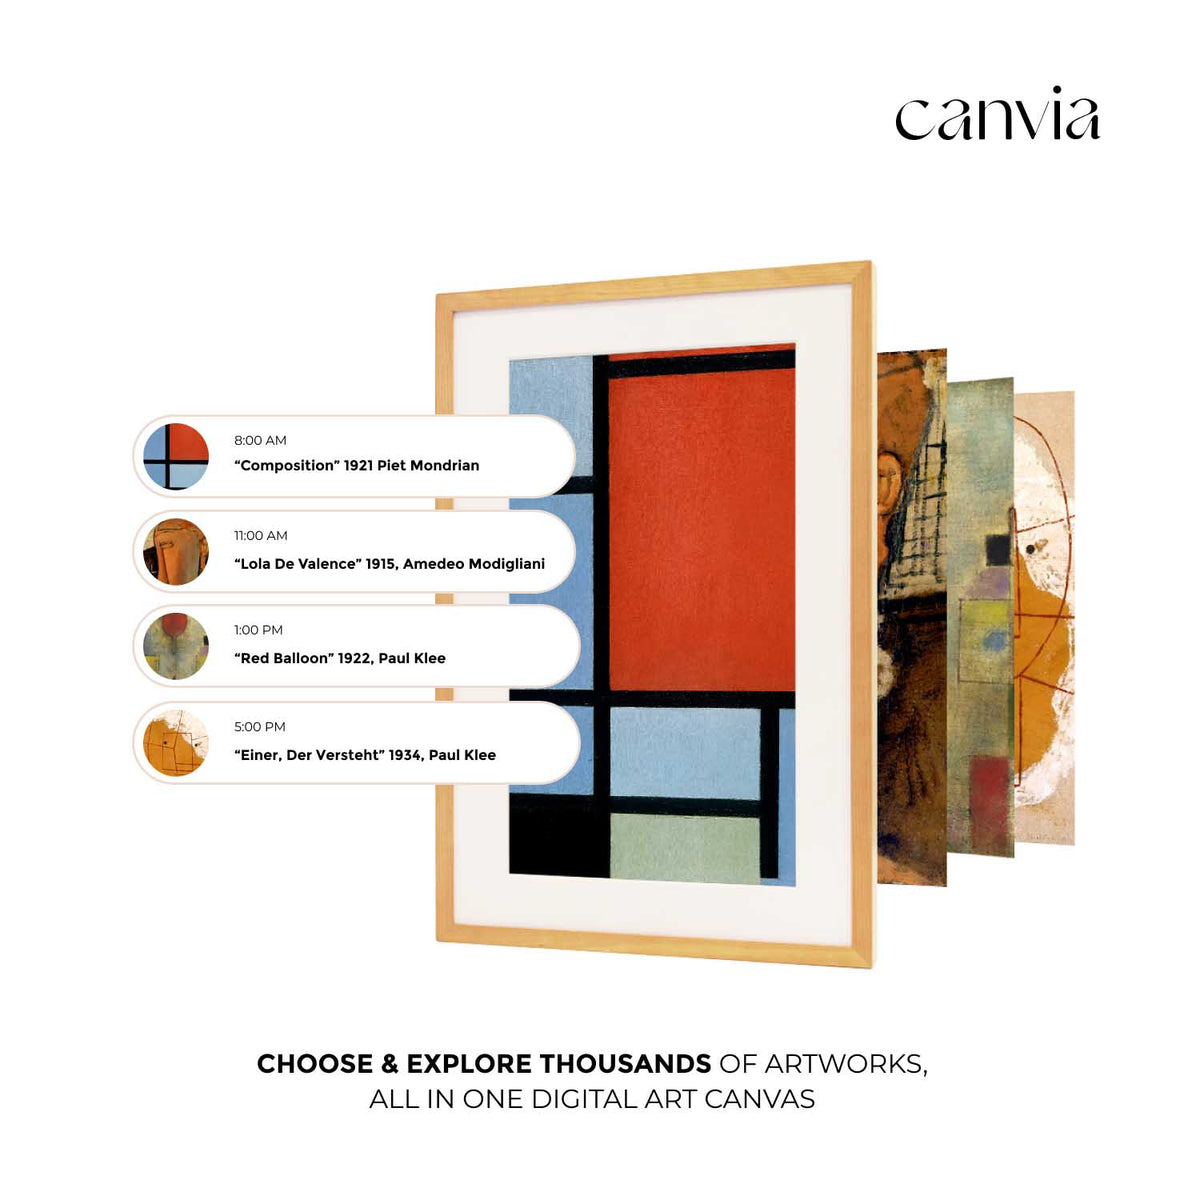 Canvia Digital Art Canvas & Smart Digital Frame